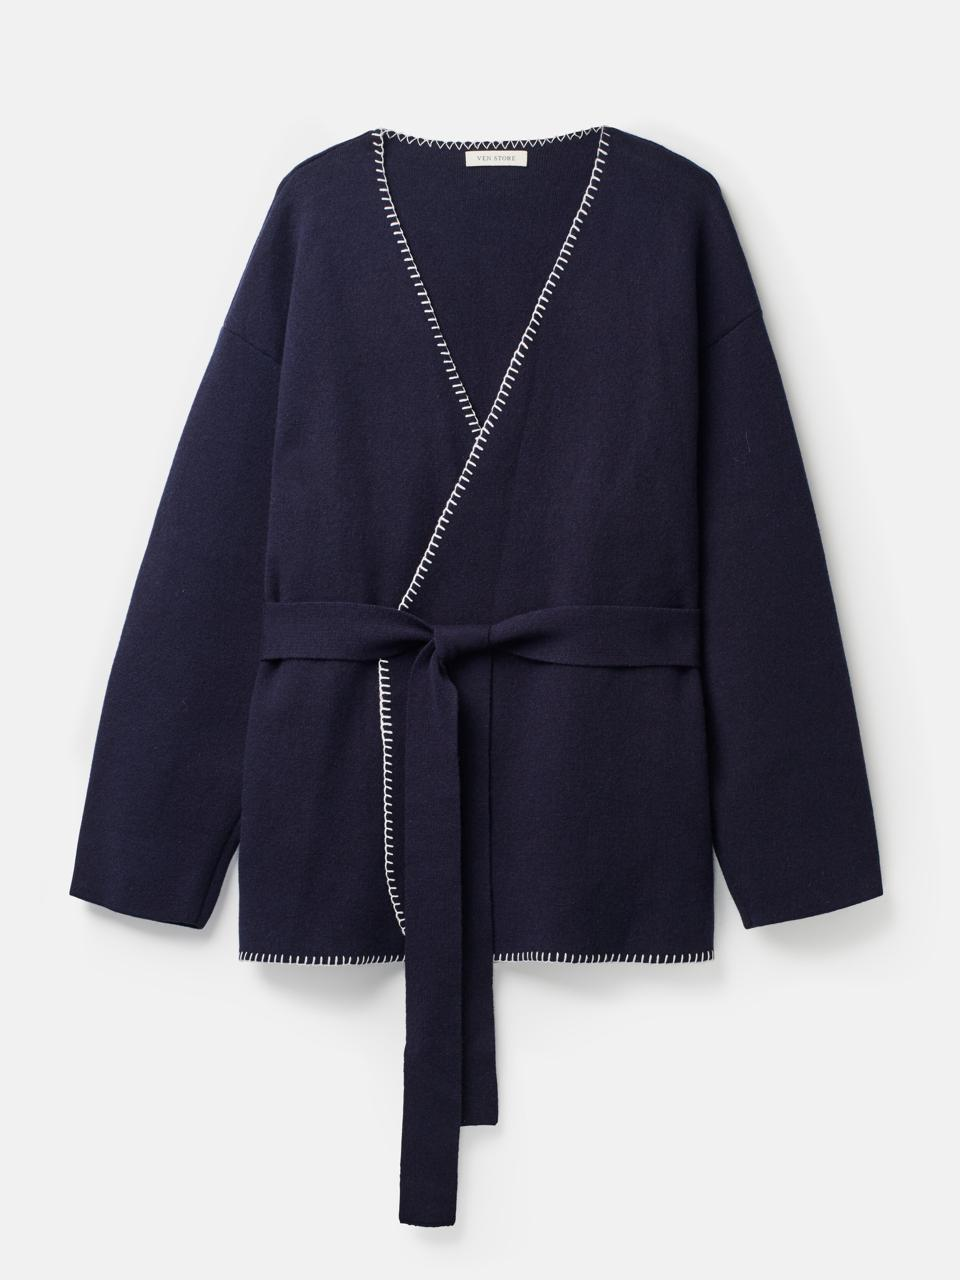 photo of ven store cardigan